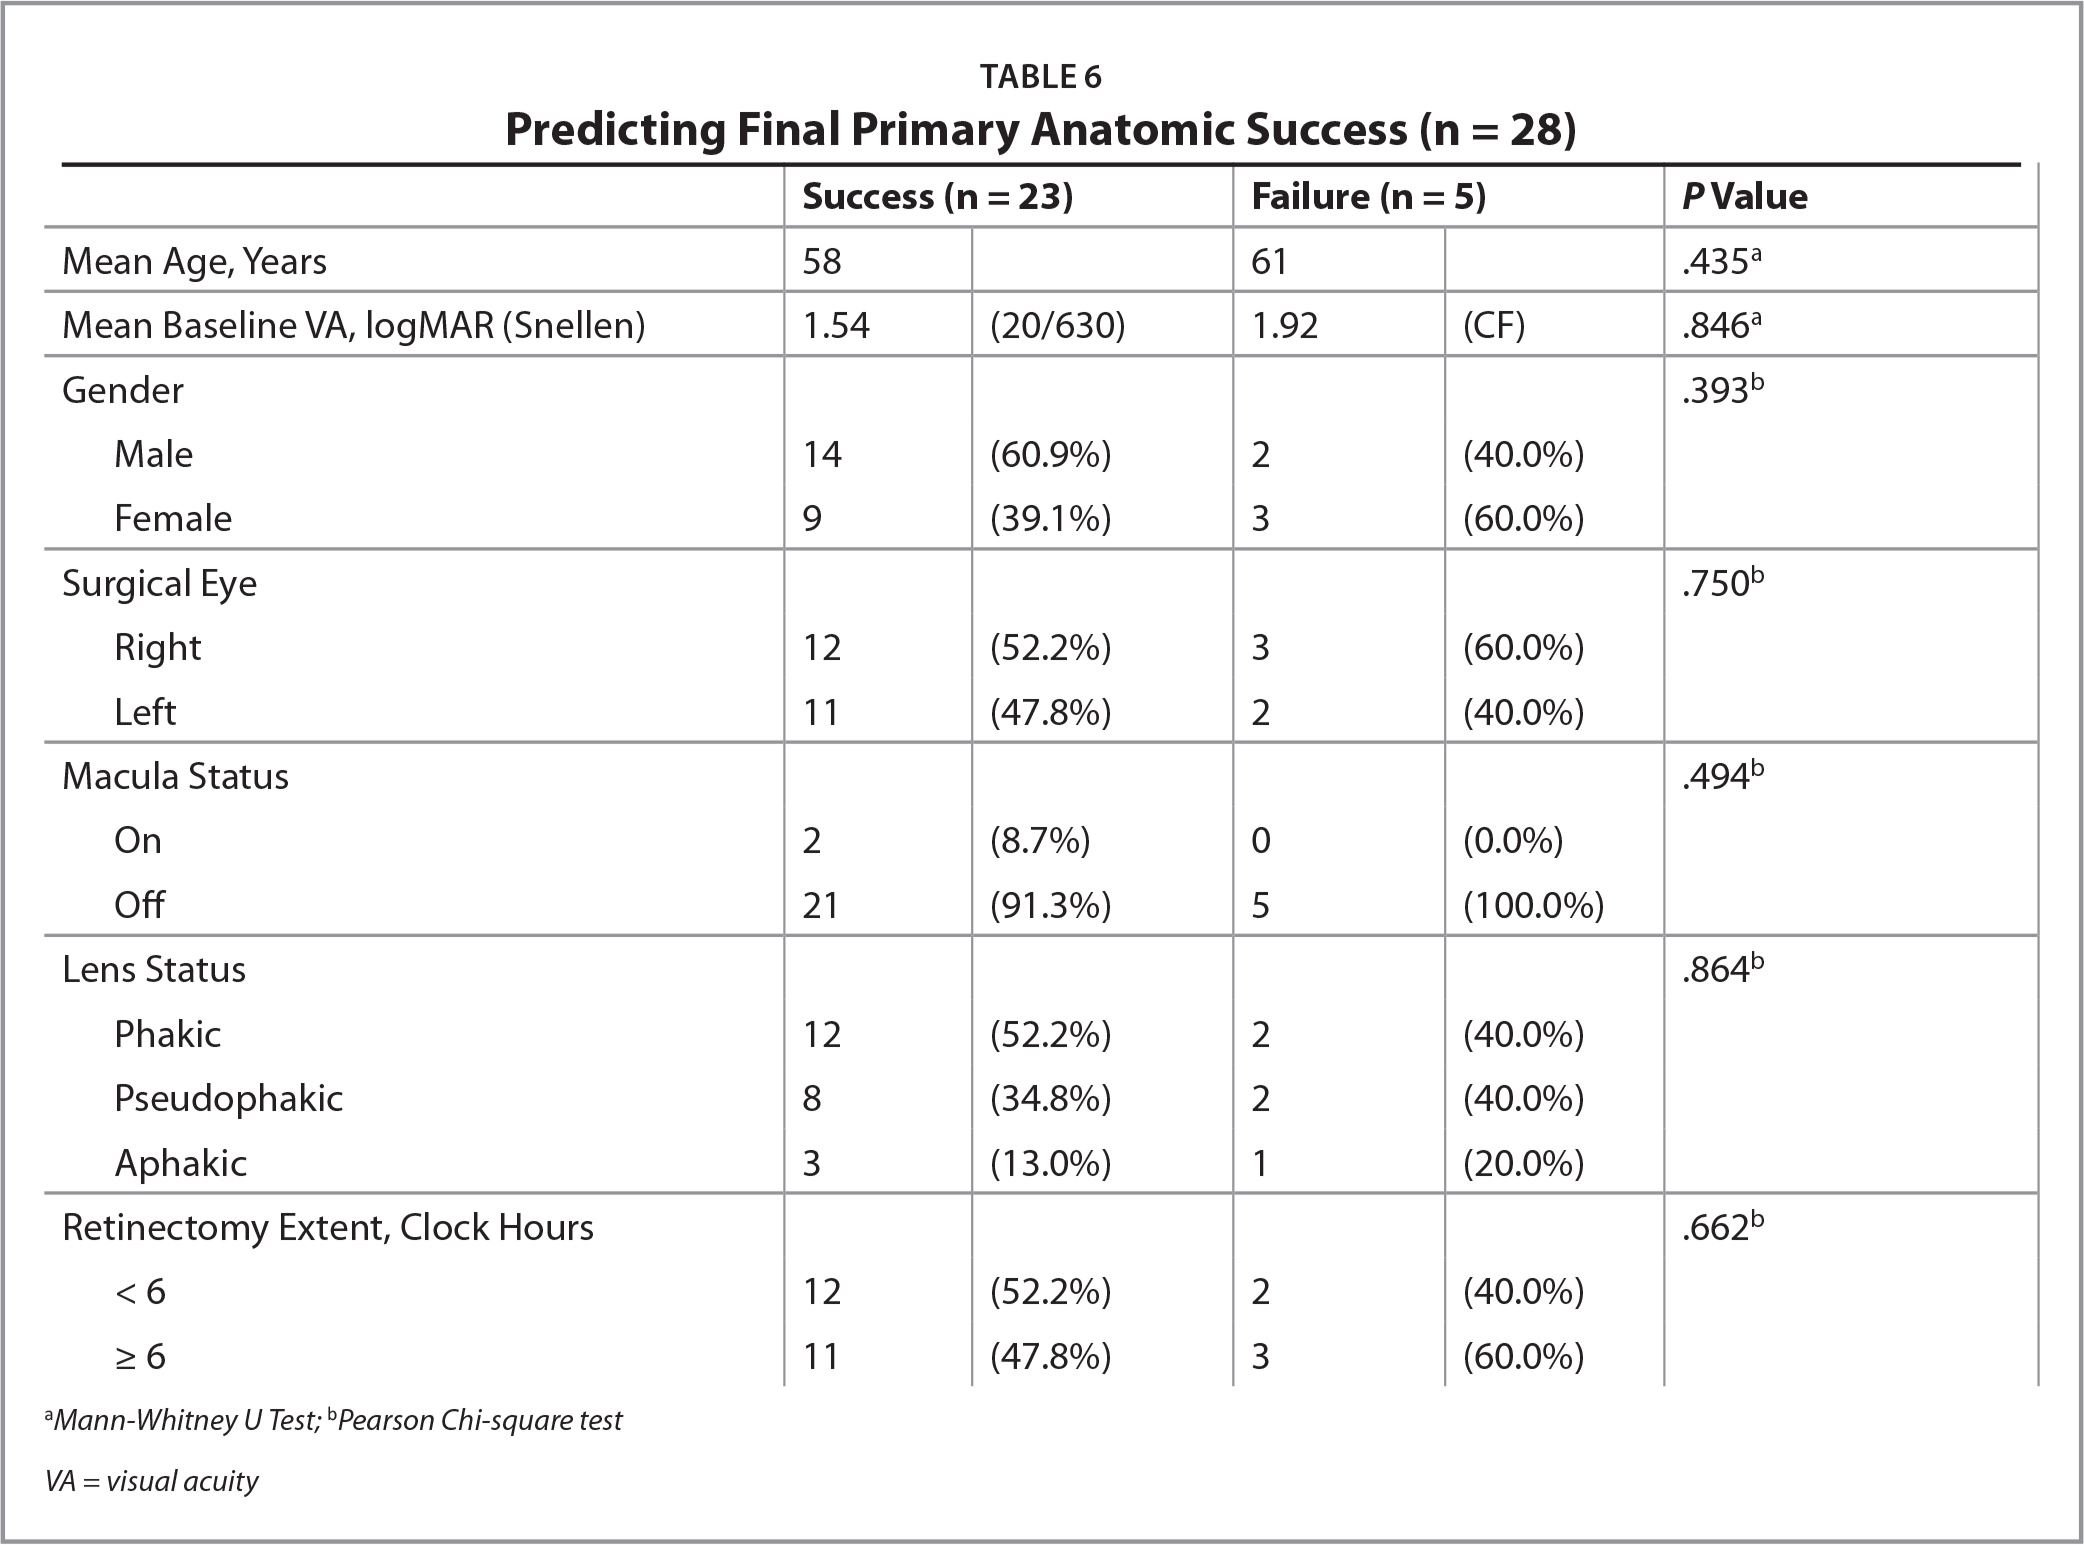 Predicting Final Primary Anatomic Success (n = 28)